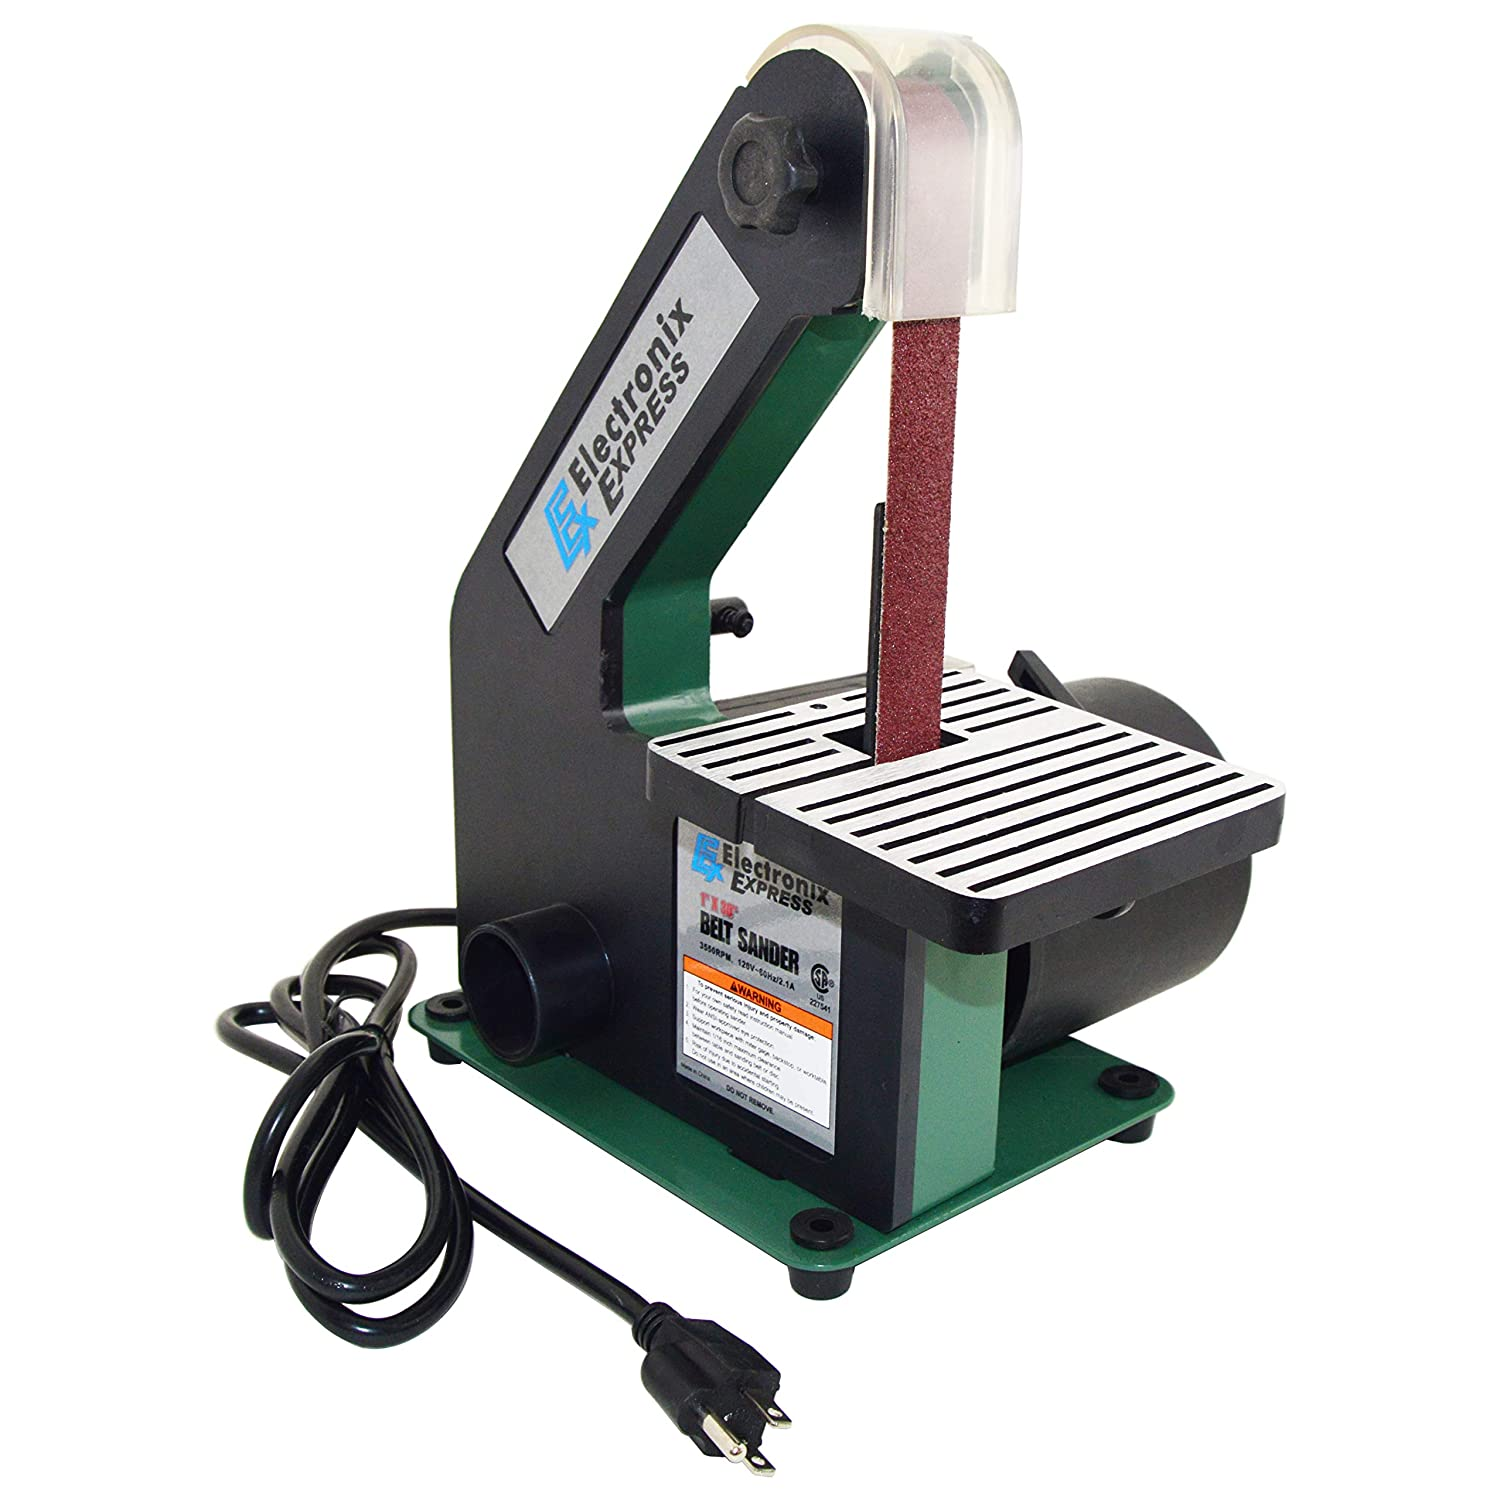 EX ELECTRONIX EXPRESS Mini 1 x 30 Belt Sander 3400 RPM